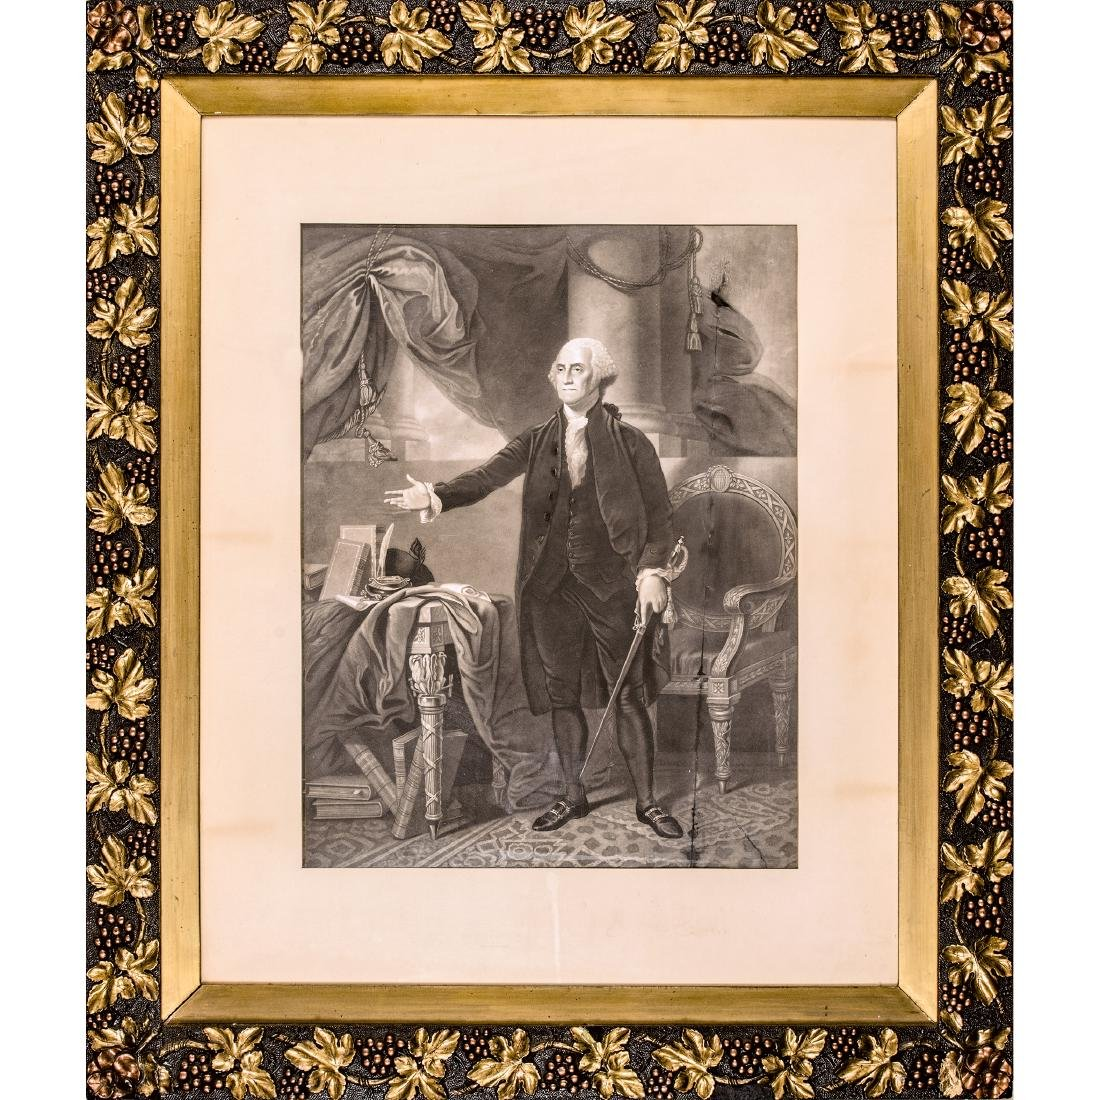 GENERAL WASHINGTON Lansdowne Portrait Engraving